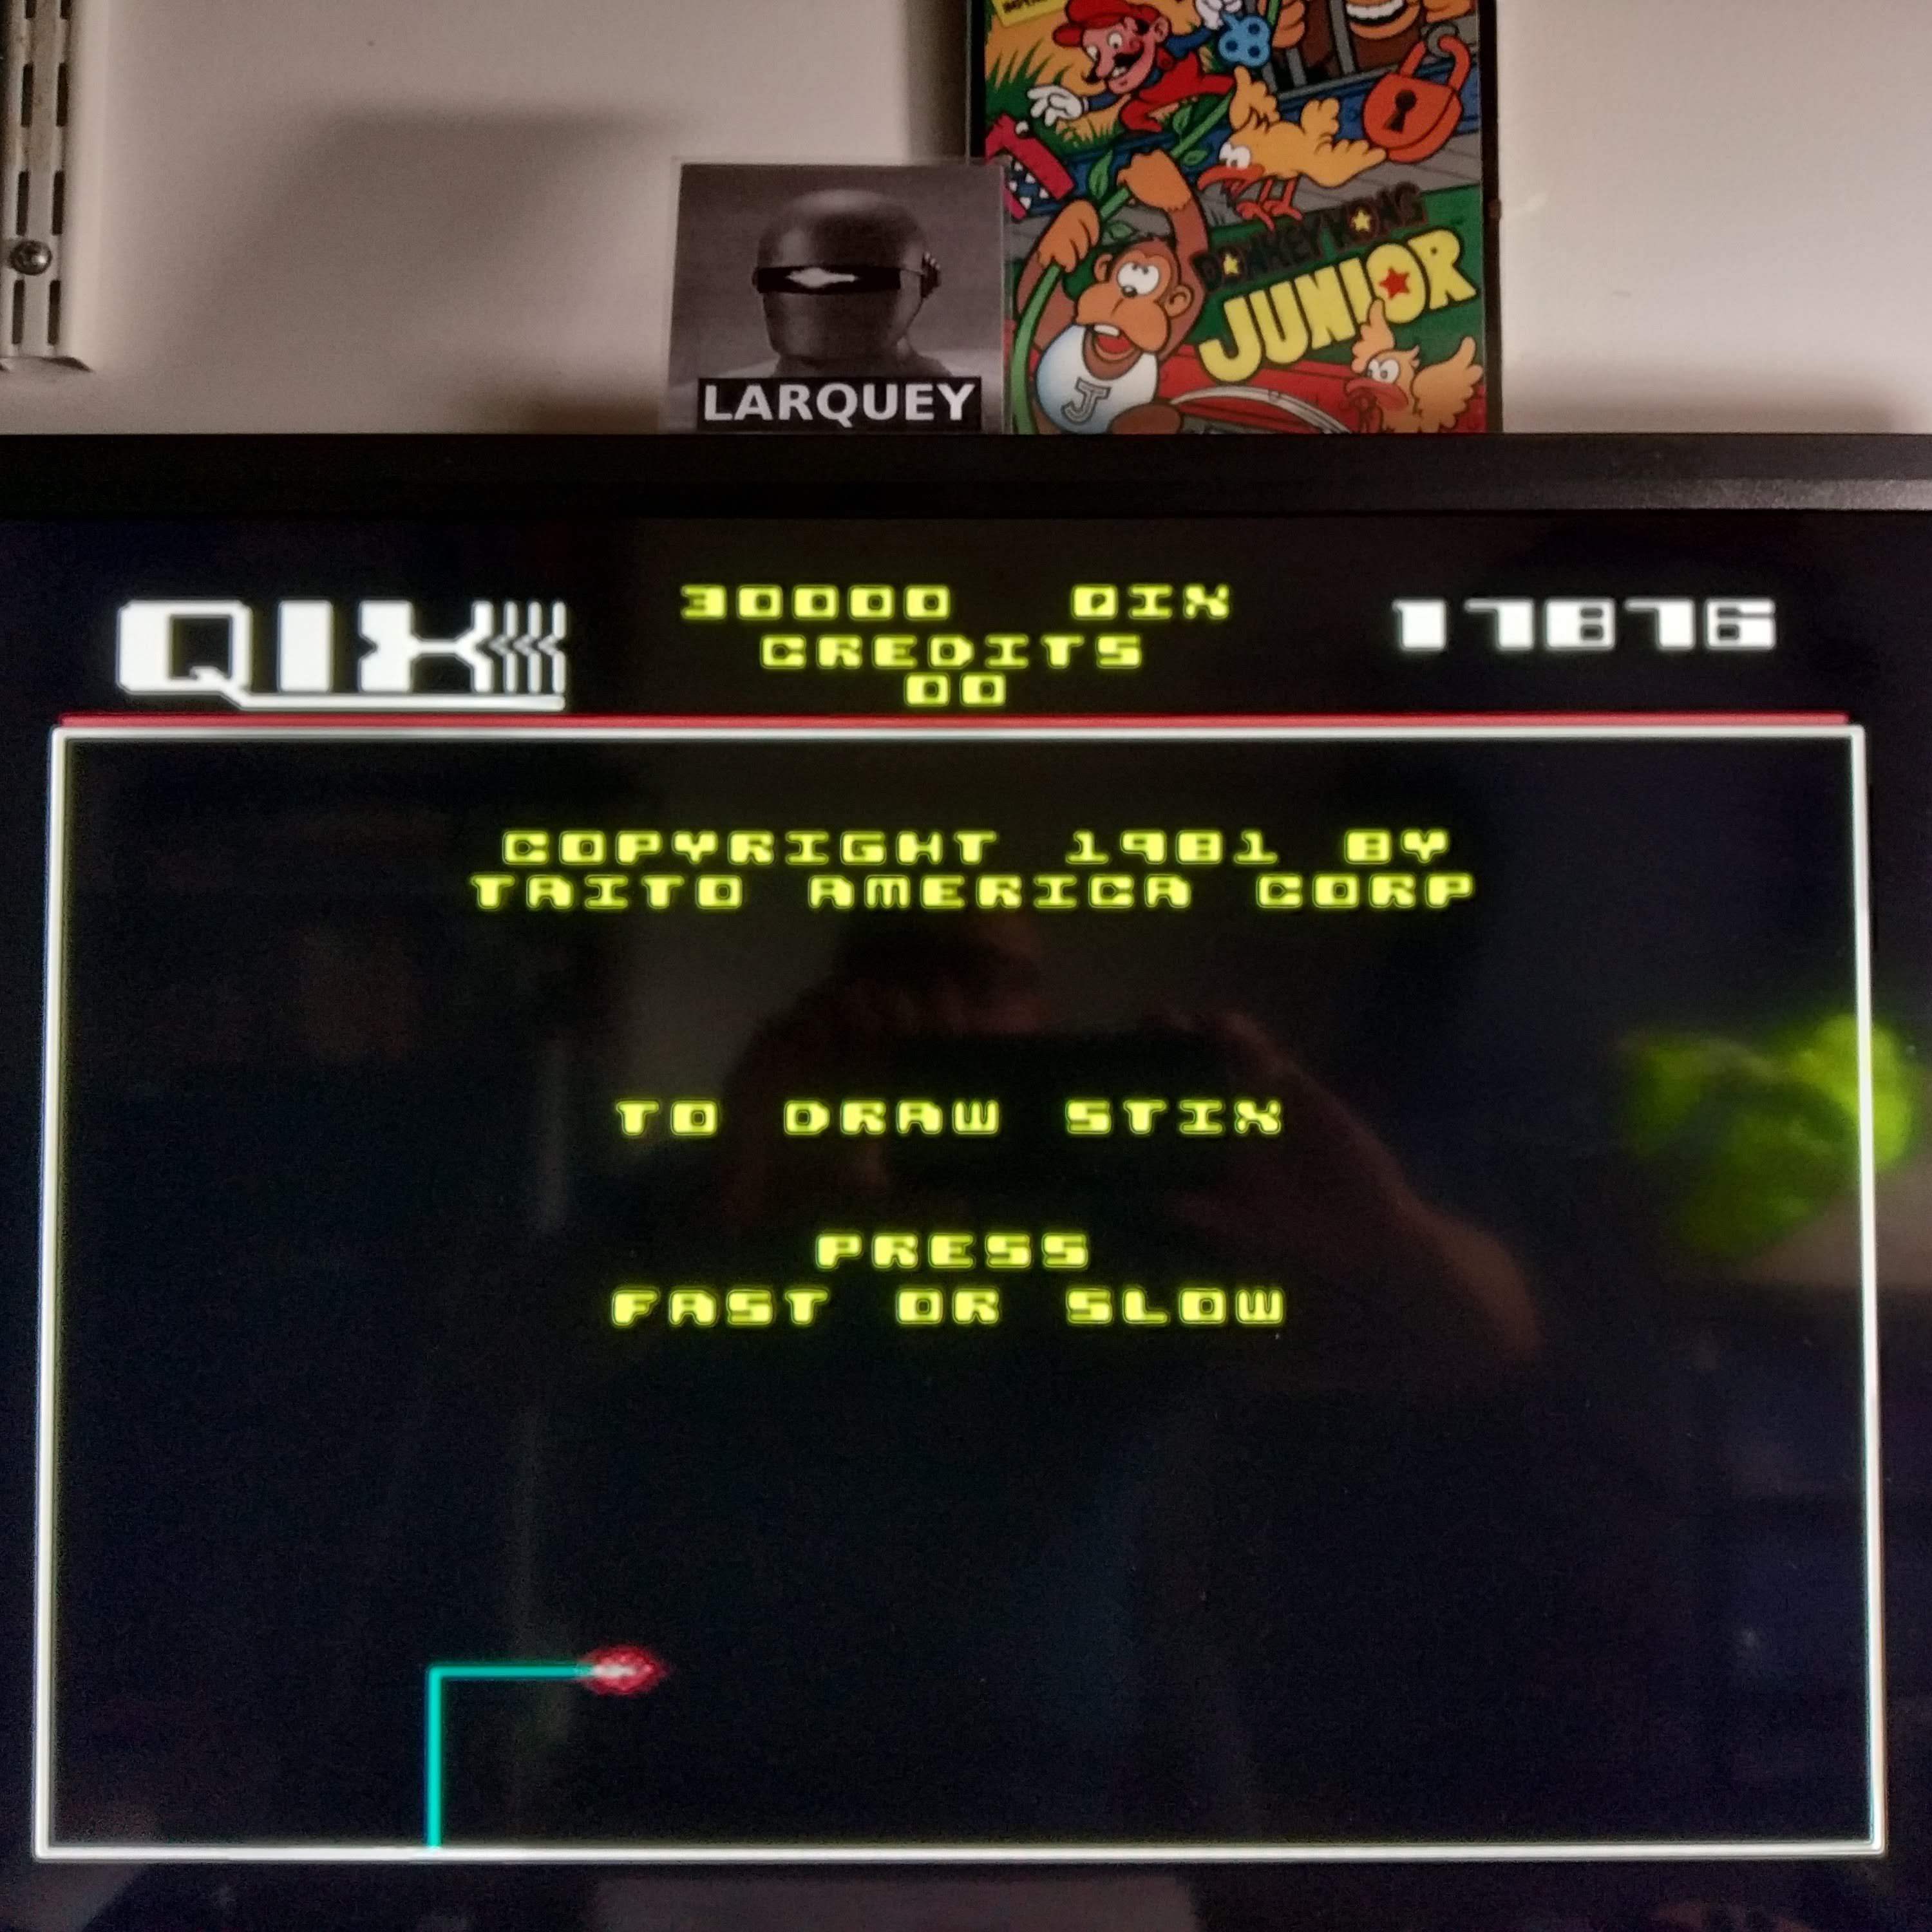 Larquey: Taito Legends 2: Qix [Easy] (Playstation 2 Emulated) 17,876 points on 2020-08-09 05:58:19